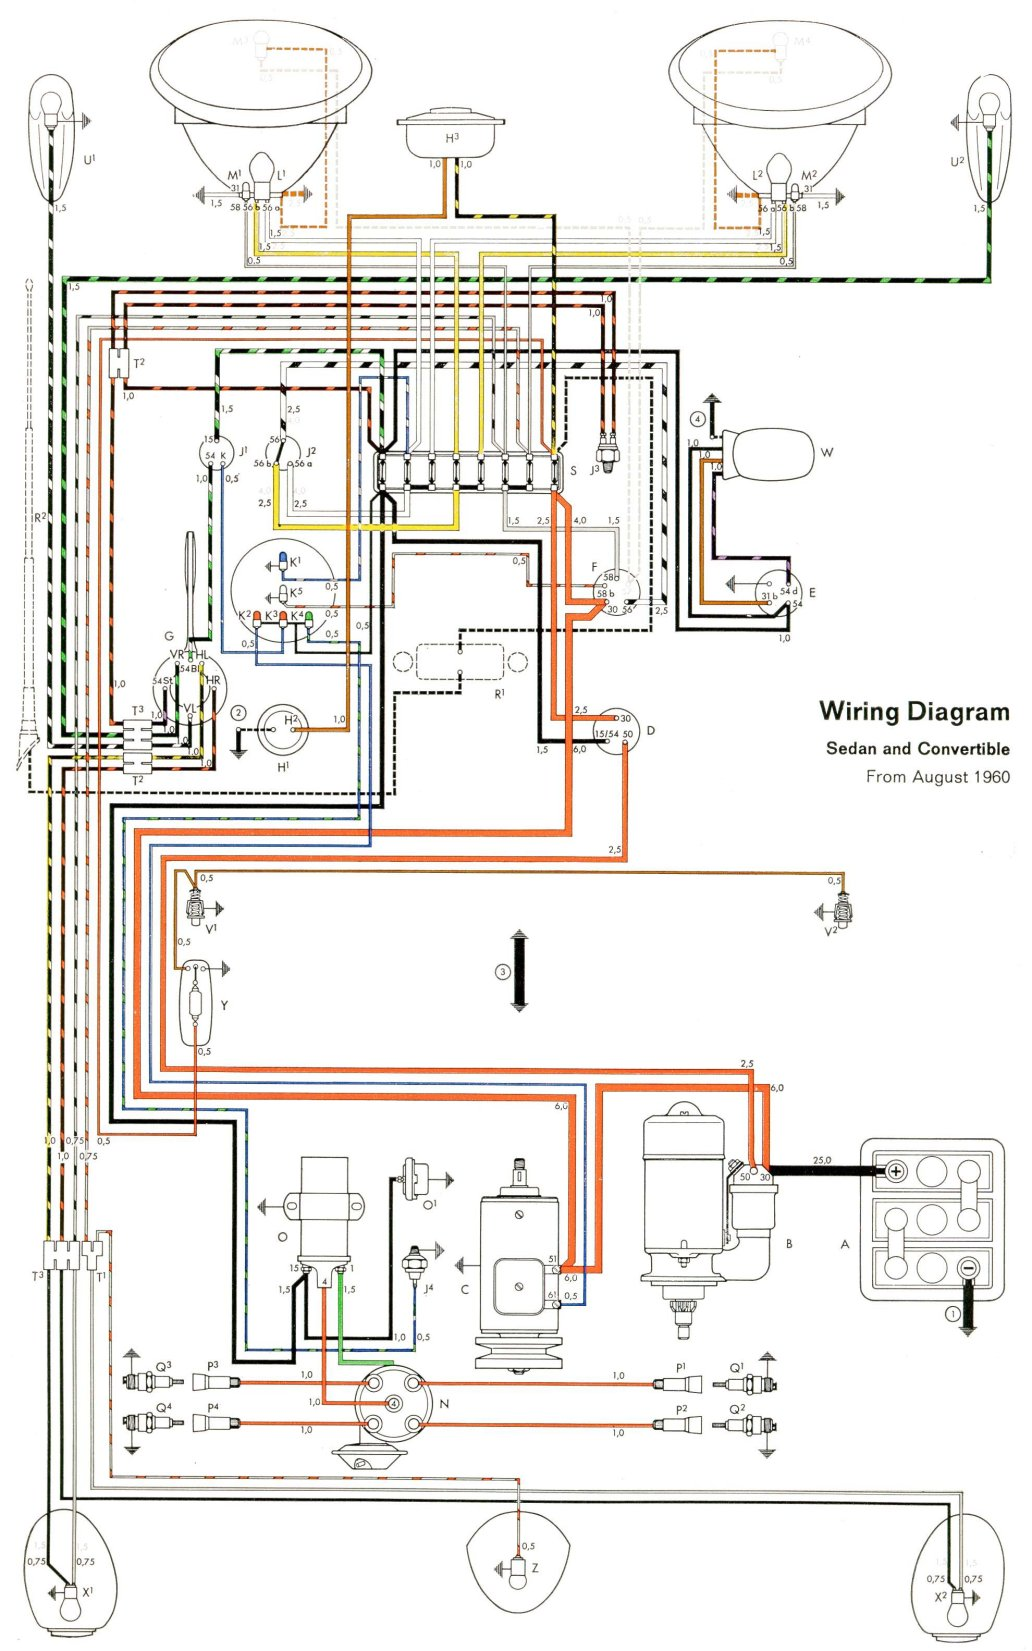 thesamba com type 1 wiring diagrams rh thesamba com 1978 beetle wiring diagram beetle wiring diagram 1971